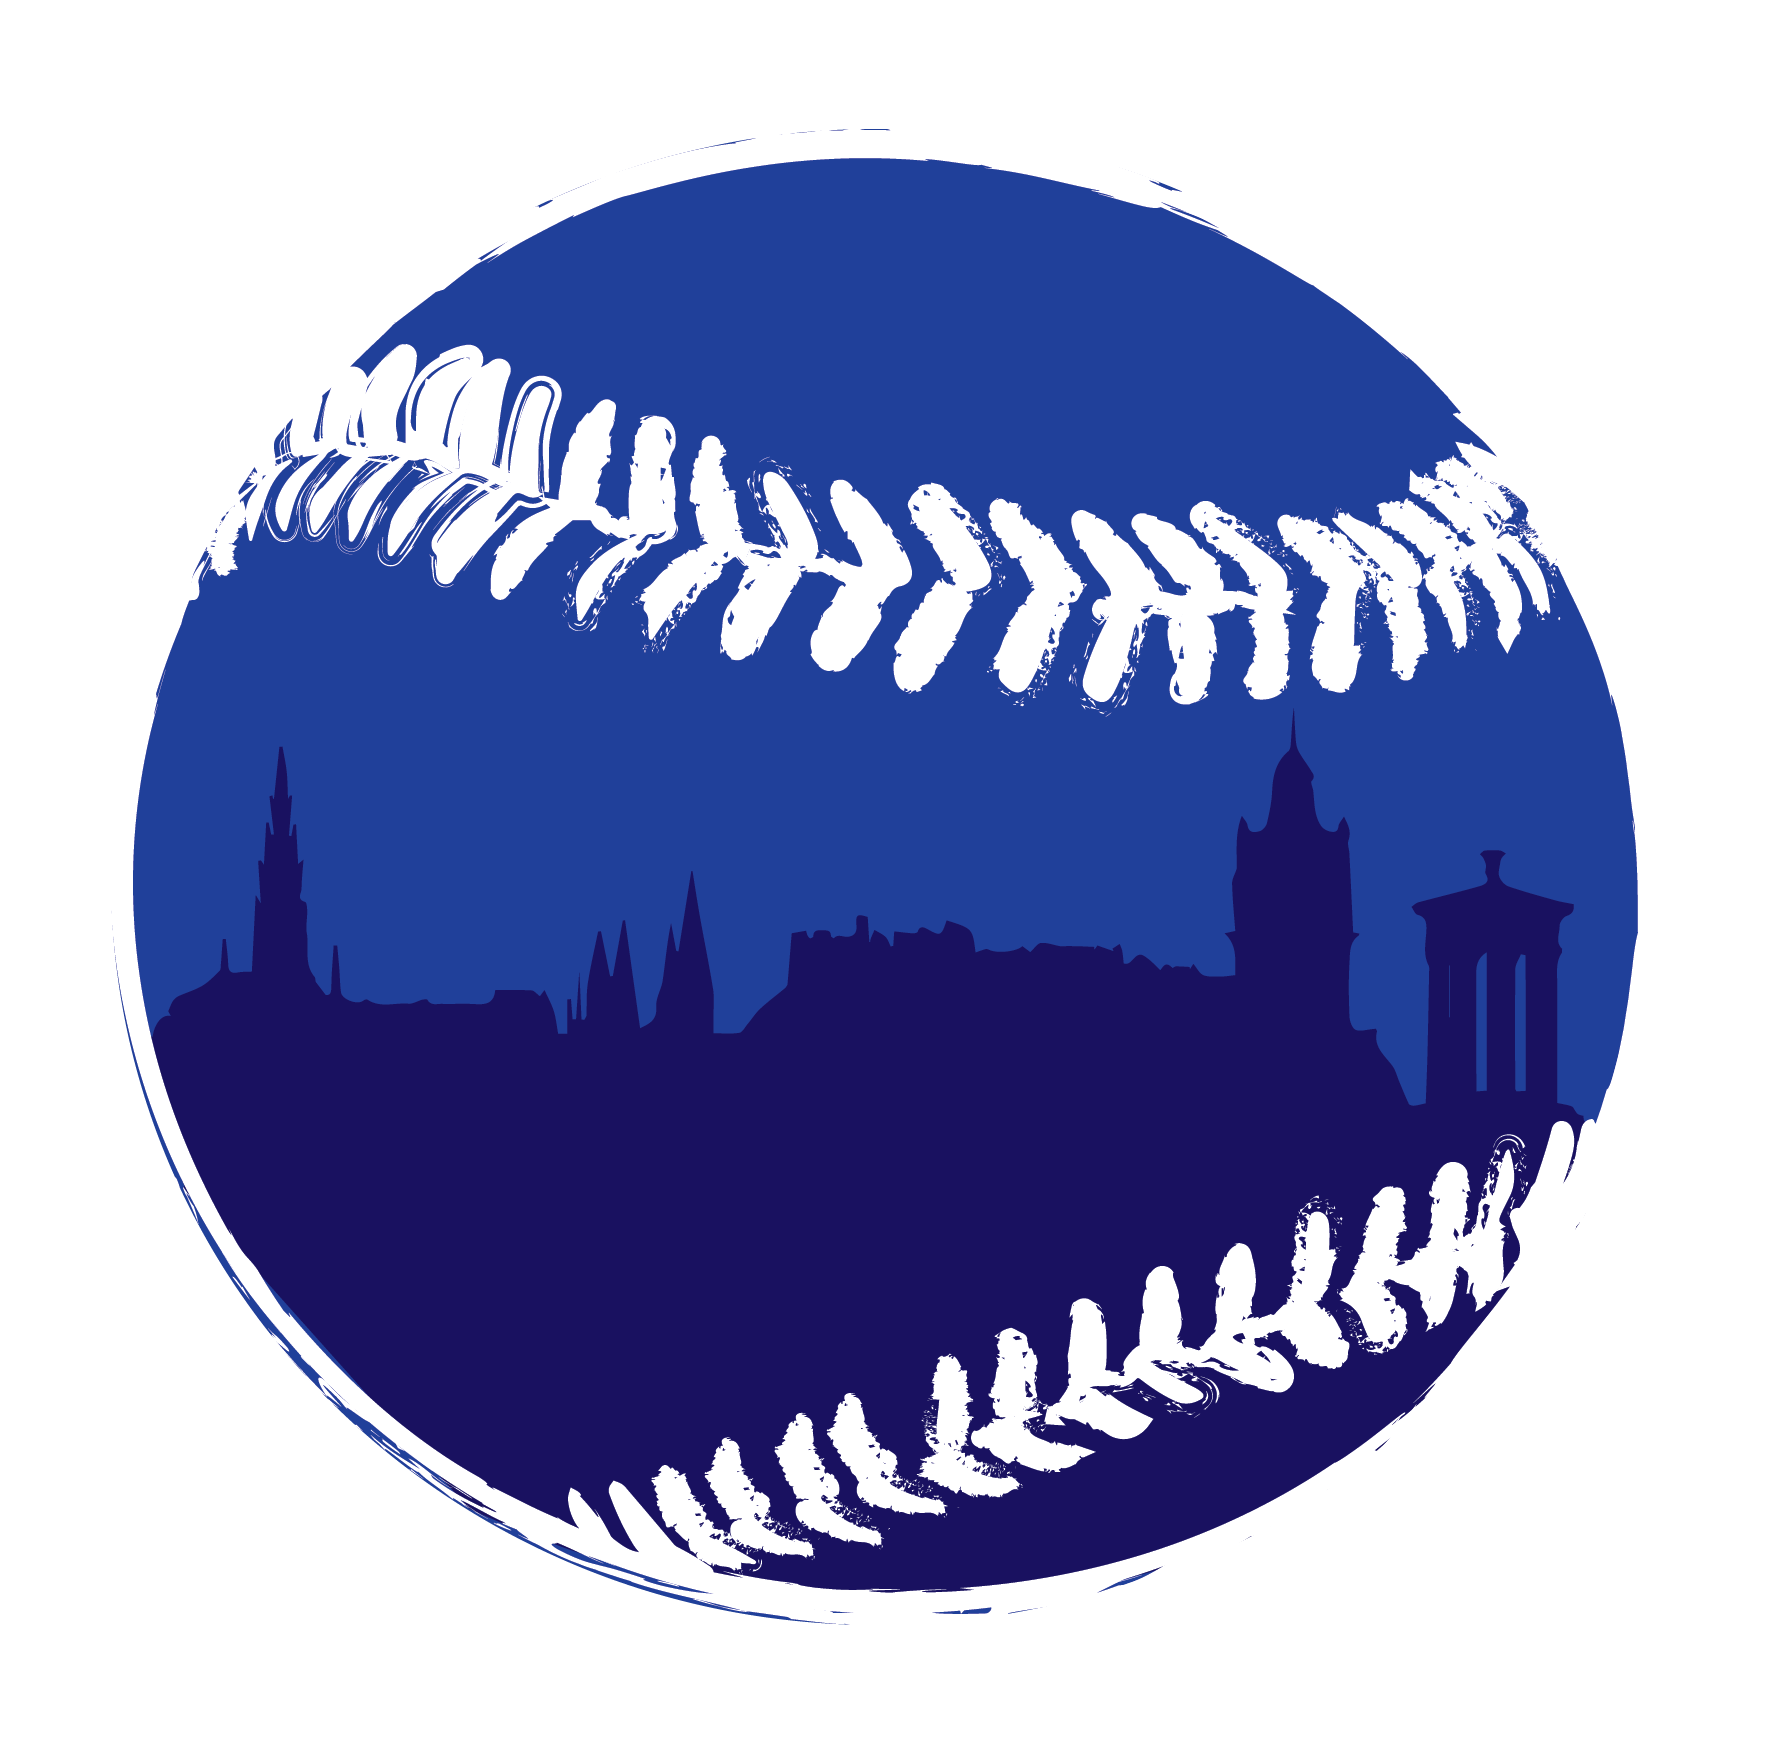 EdinburghSoftball.co.uk